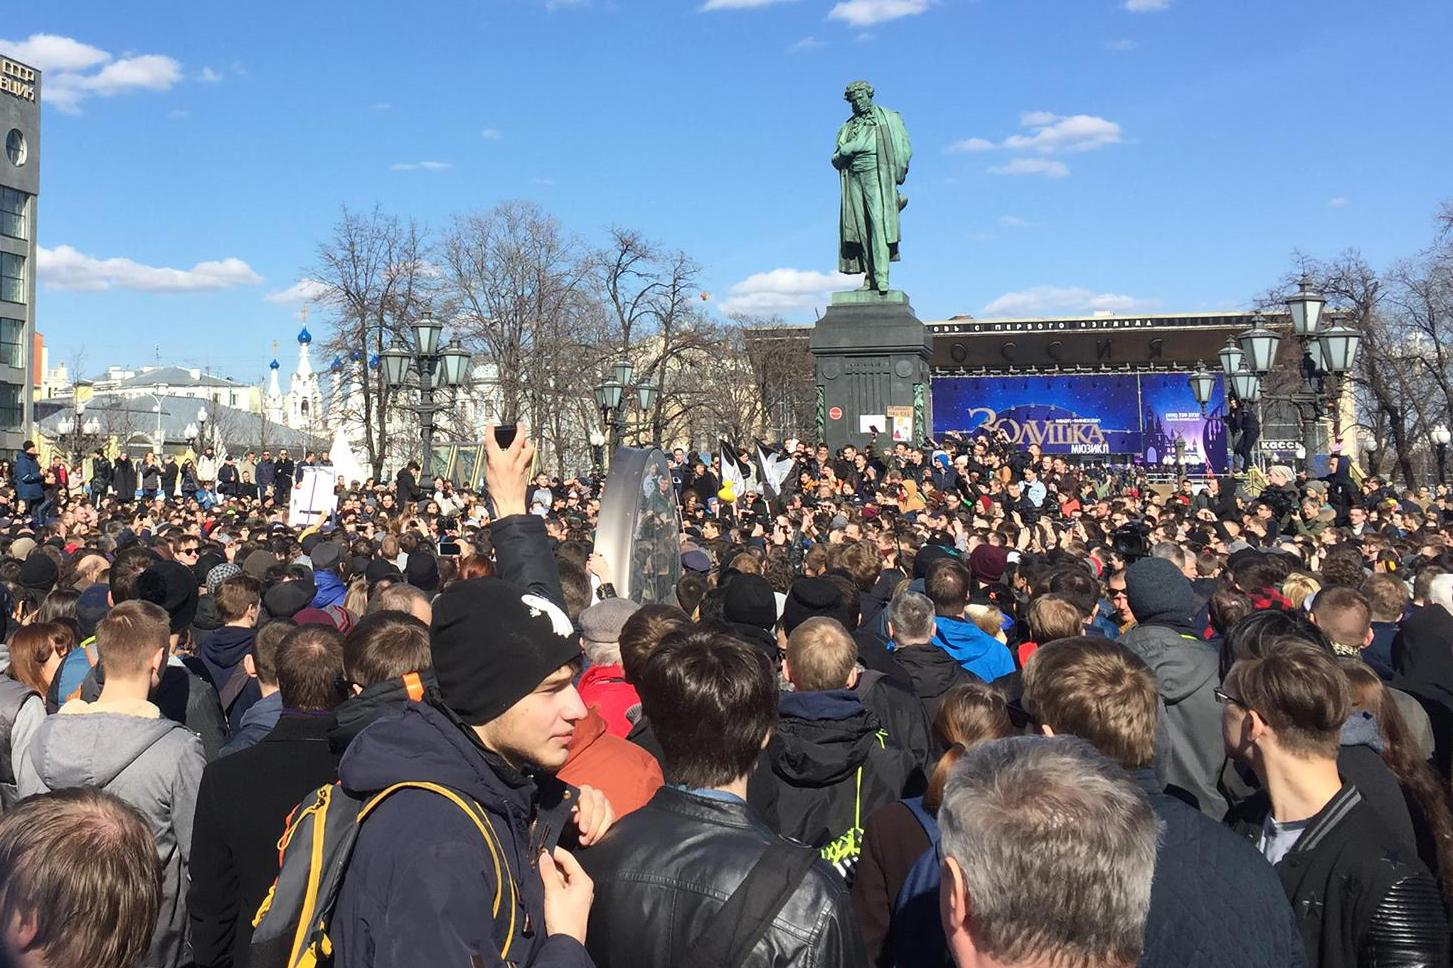 Protesters assembled around Pushkinskaya Square in Moscow on March 26, 2017.